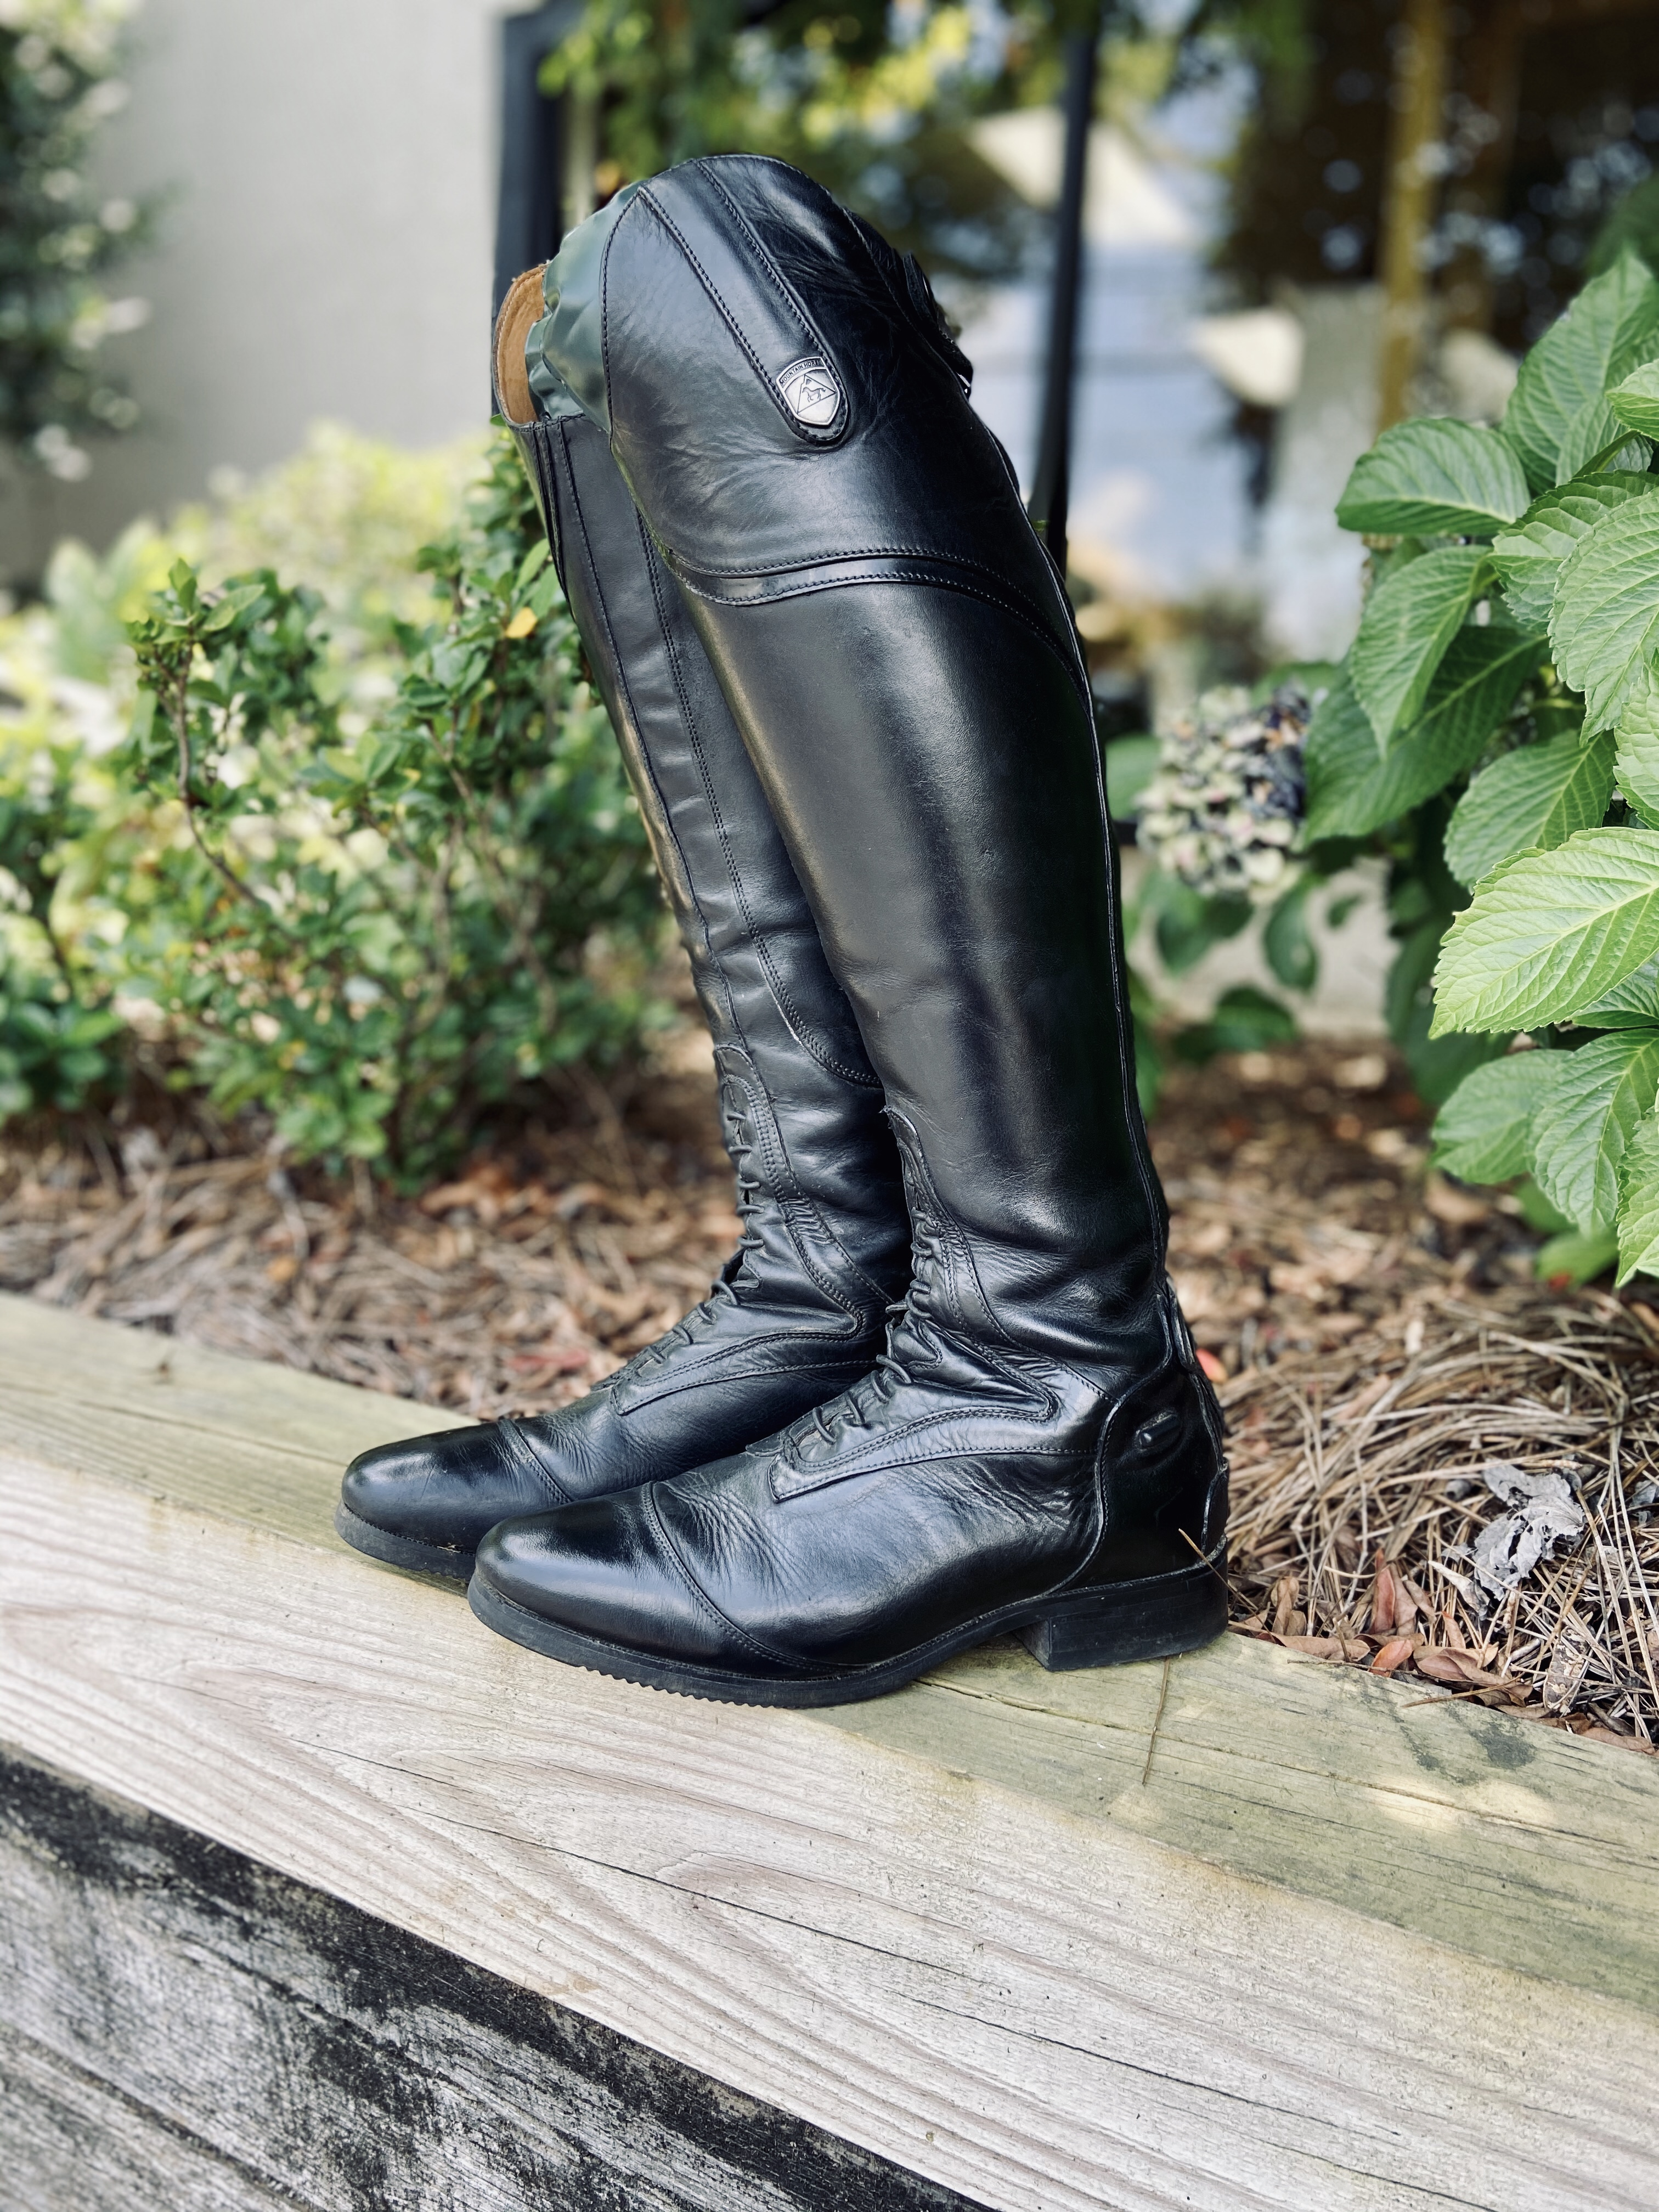 Mountain Horse Sovereign Field Boots freshly cleaned and polished